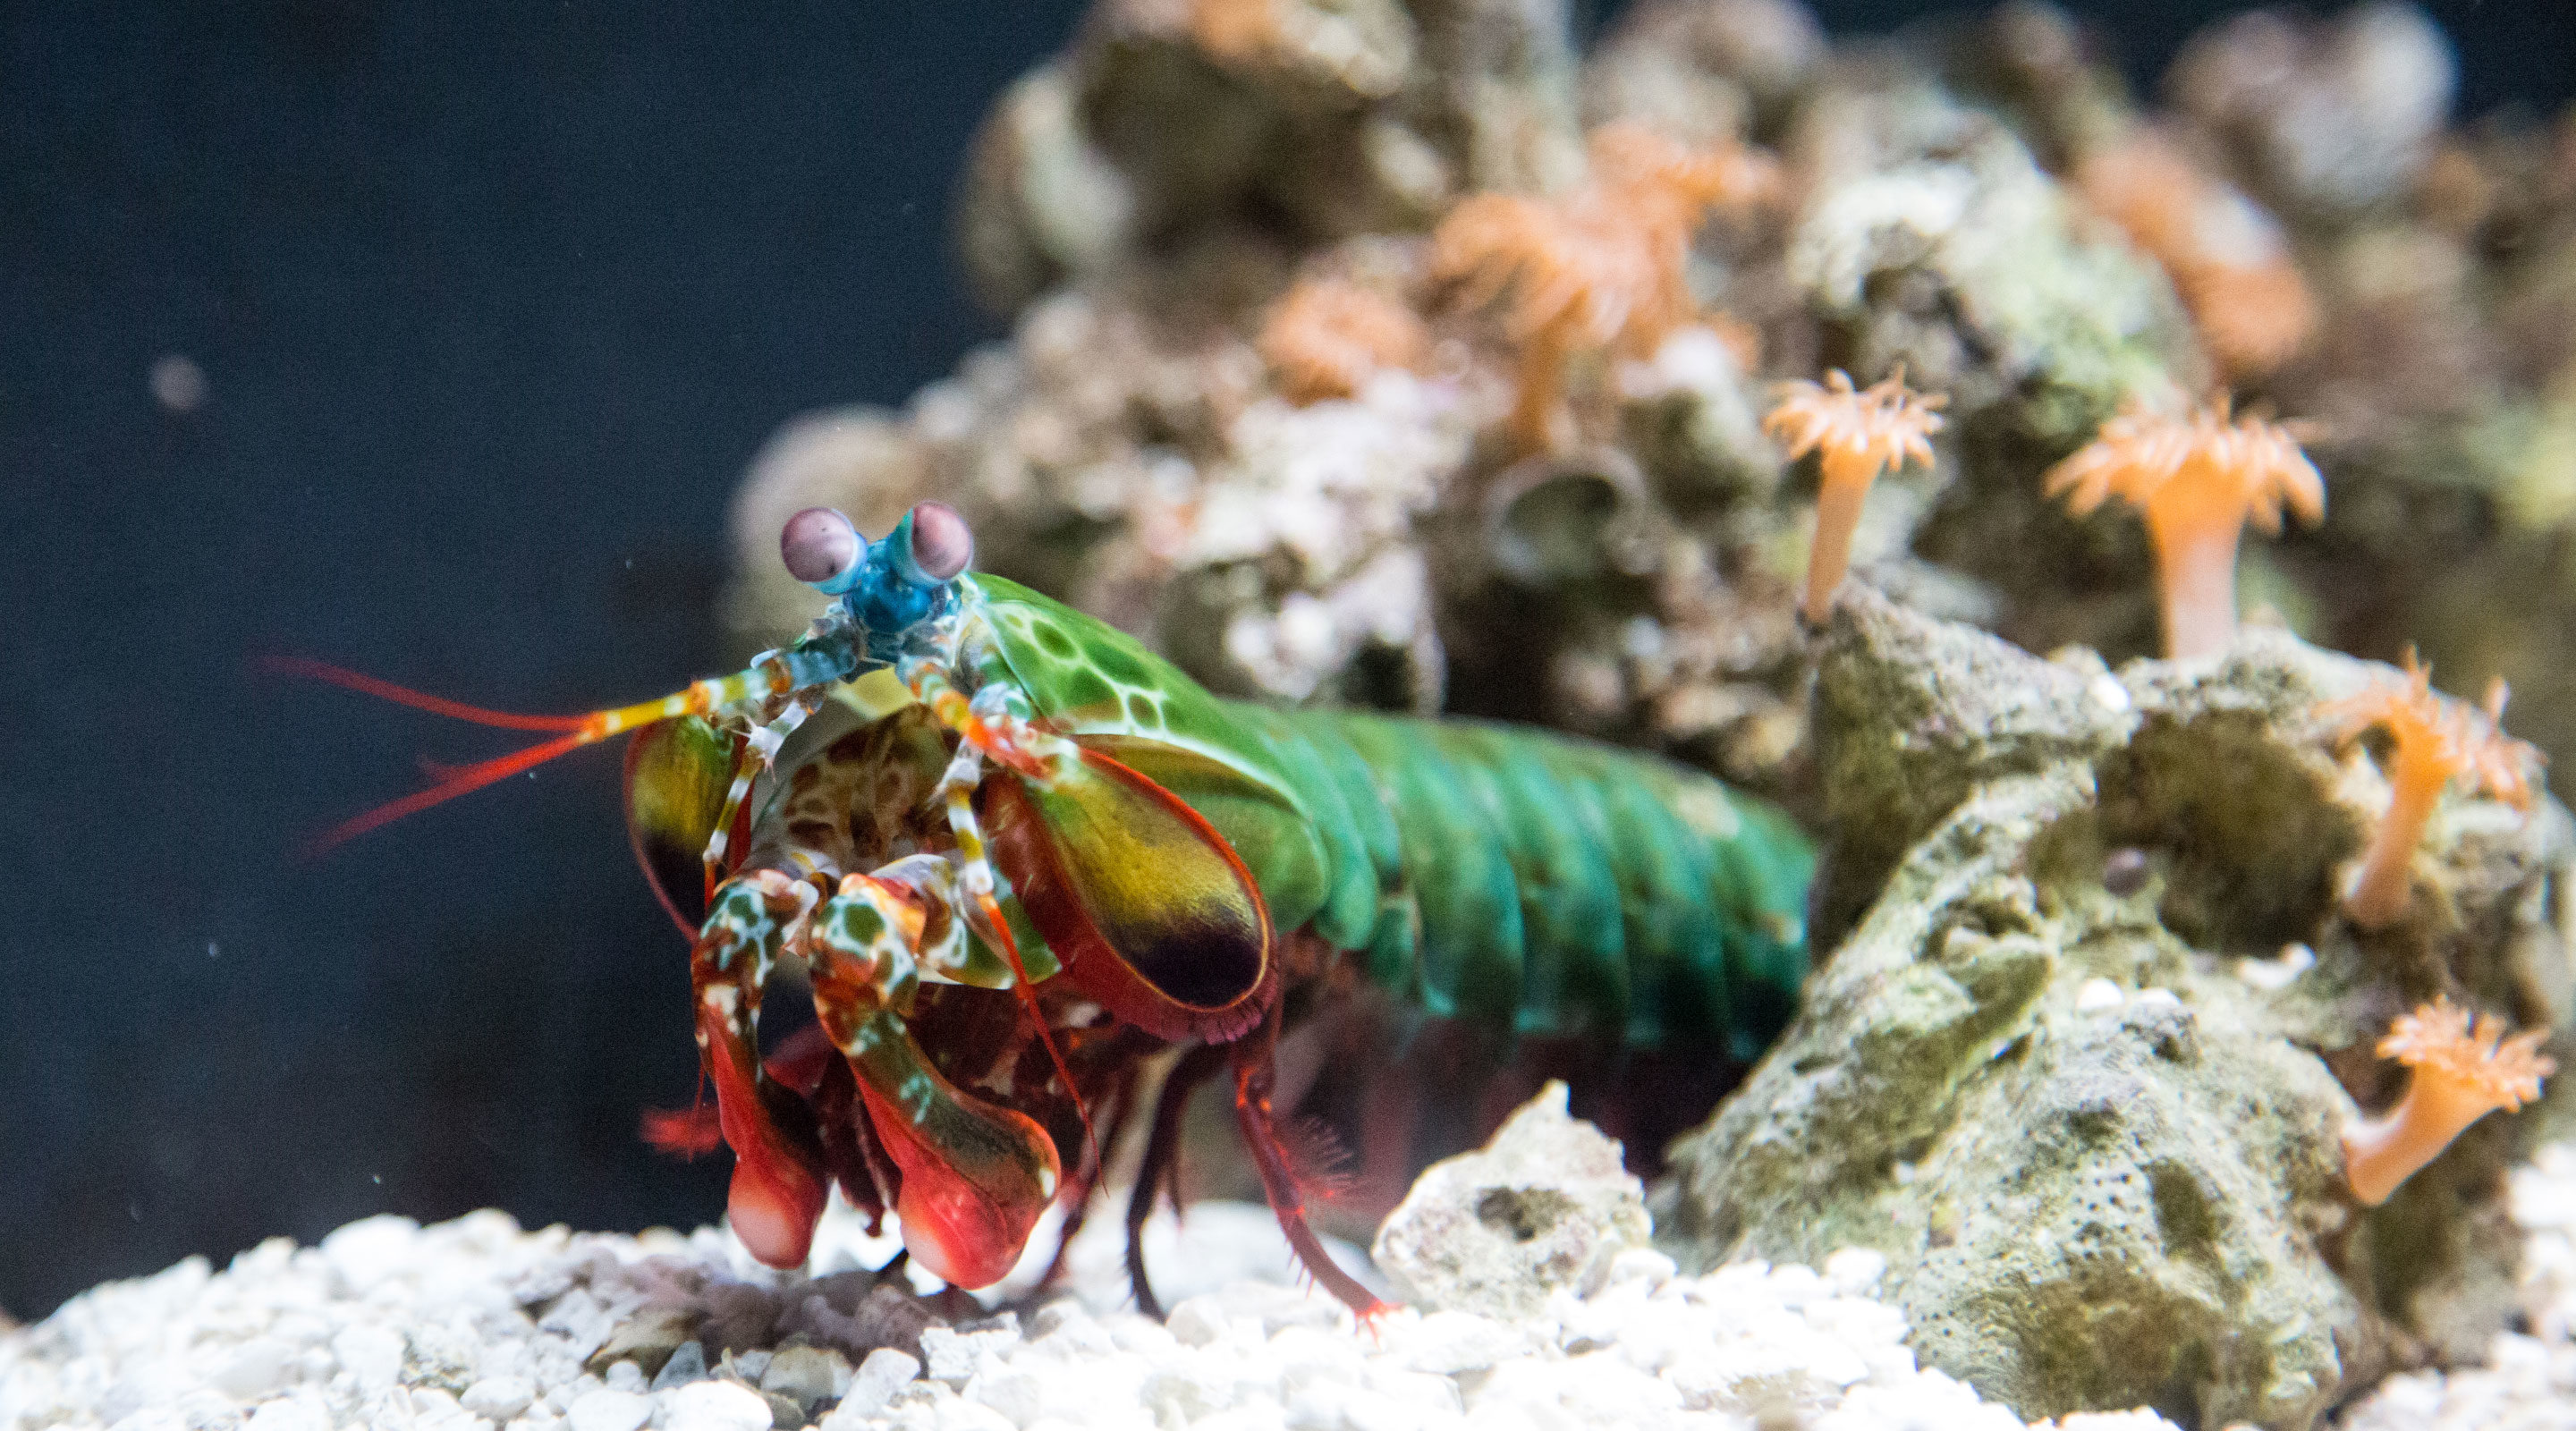 Photo of a mantis shrimp